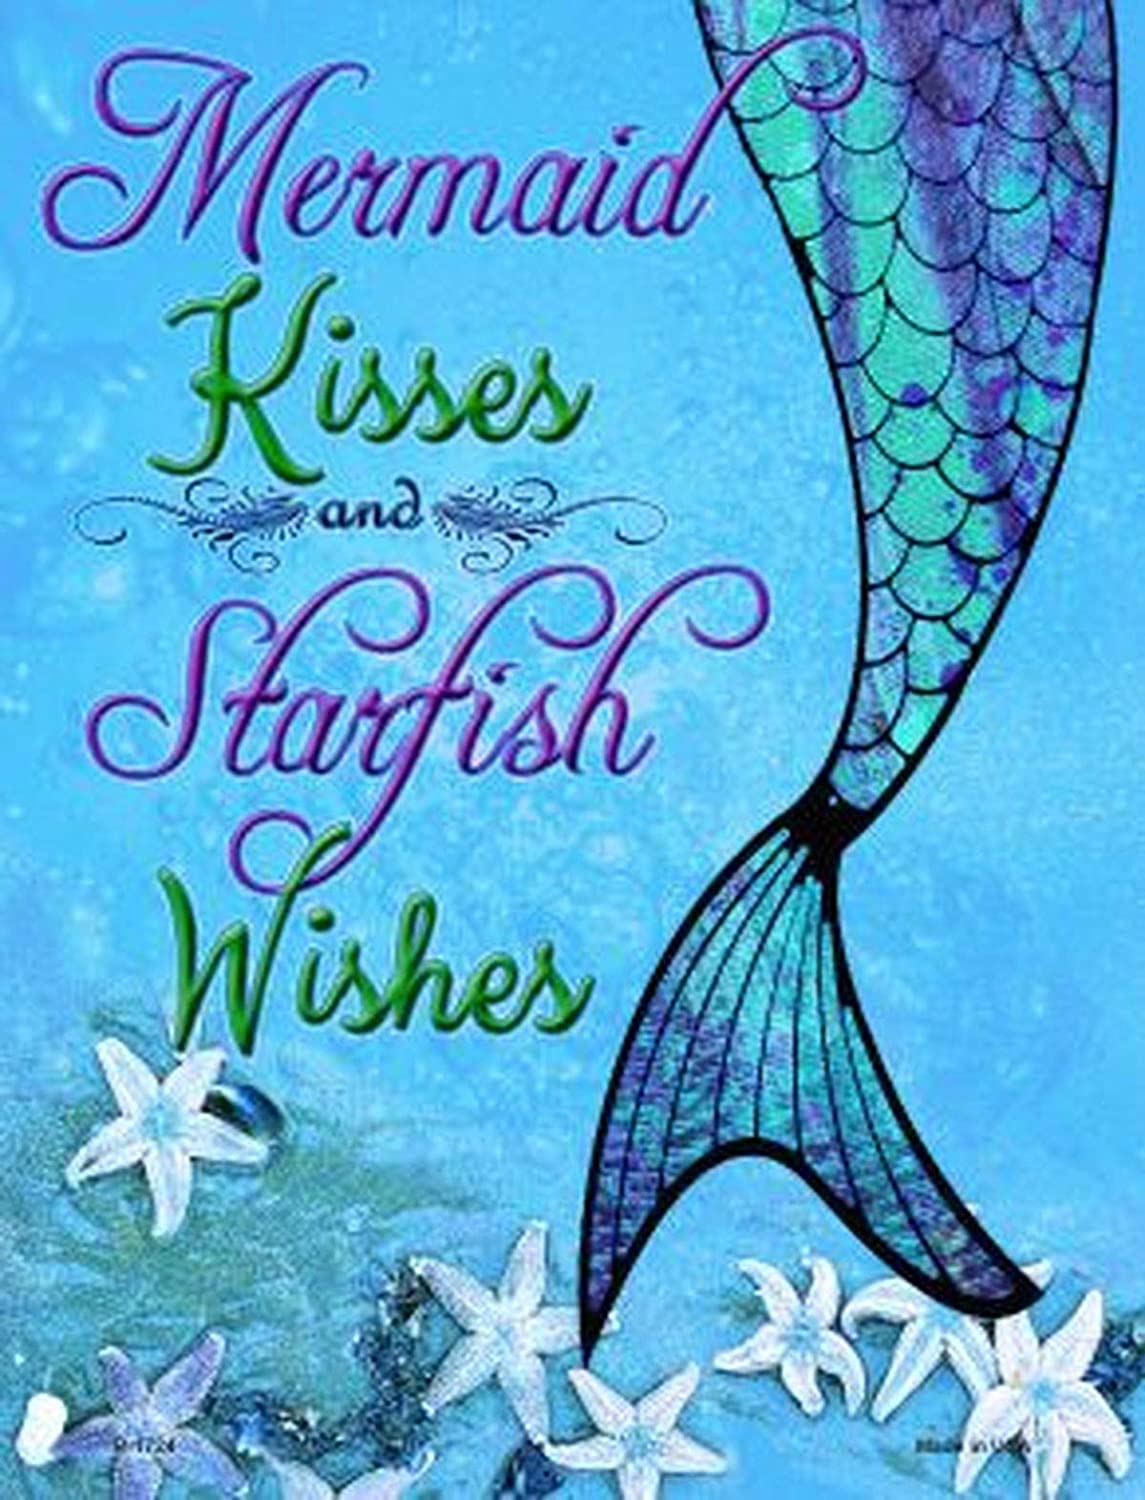 Mermaid kisses starfish wishes,excellent condition,never used,measures 12H 9.25 circumstance,cork bottle with lights,uses 2 AA batteries